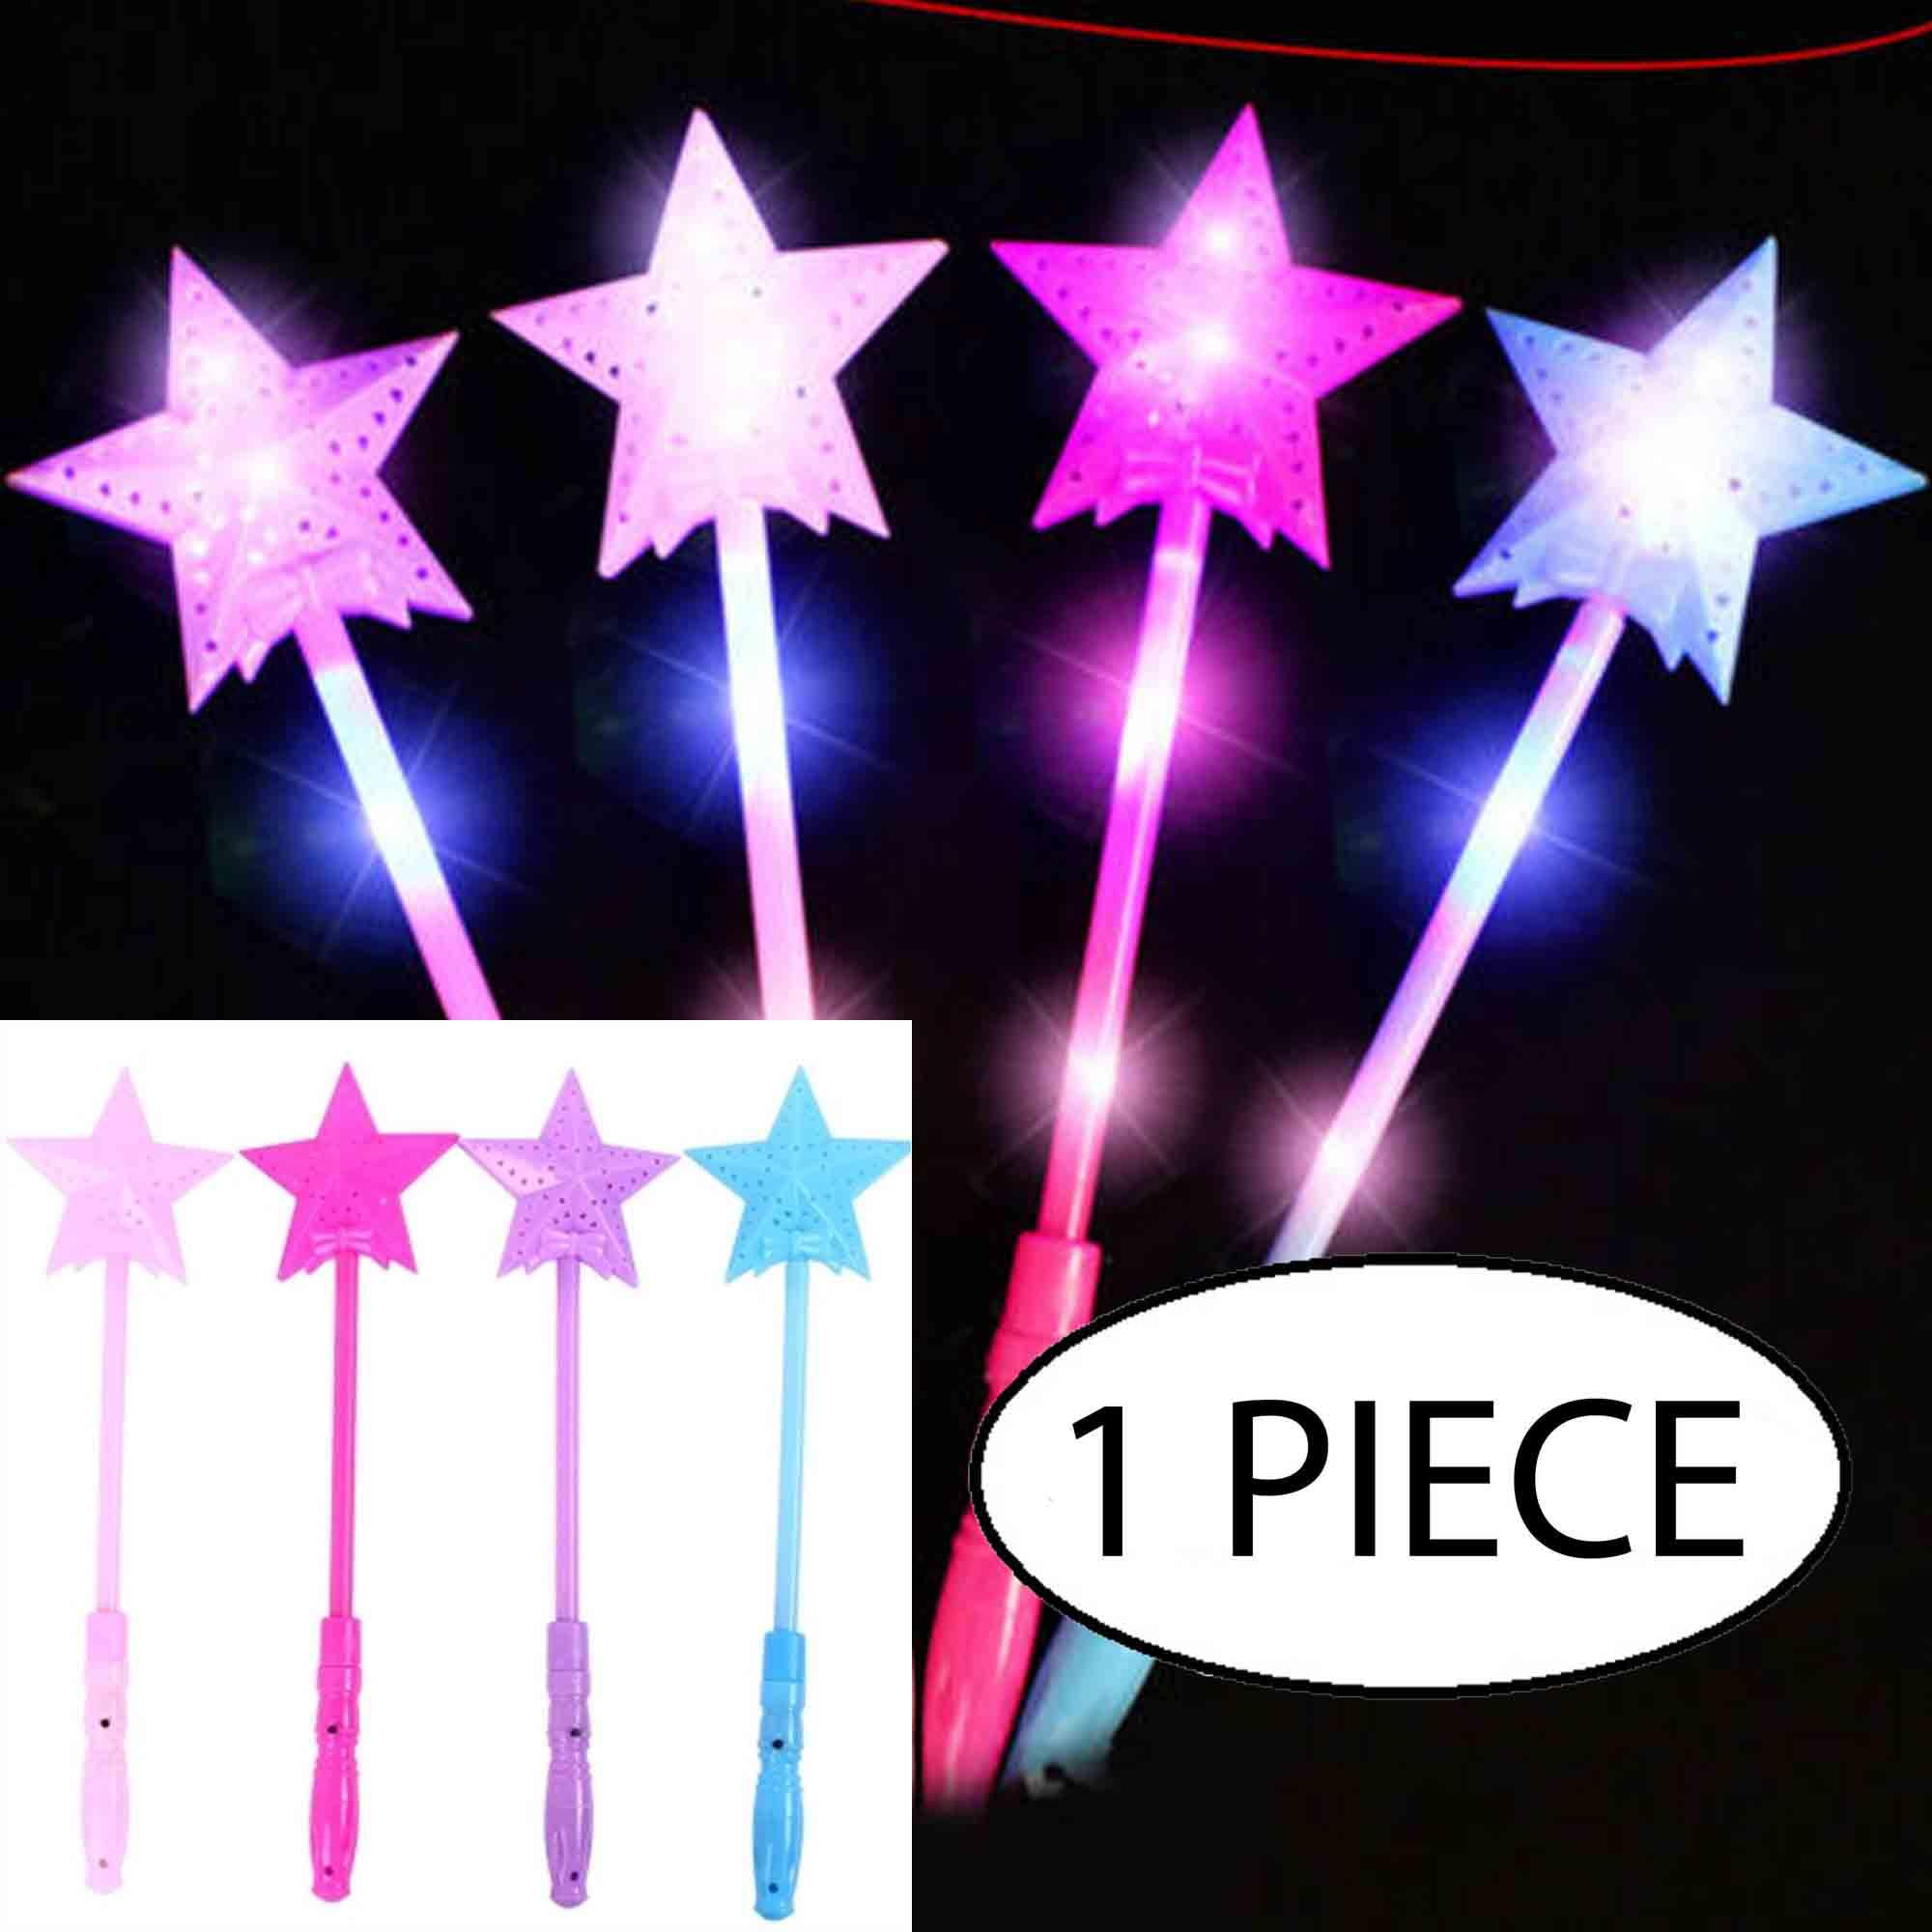 LED Flashing Stick Light Up Star Fairy Magic Wand Sticks Party Festival Toy Gift